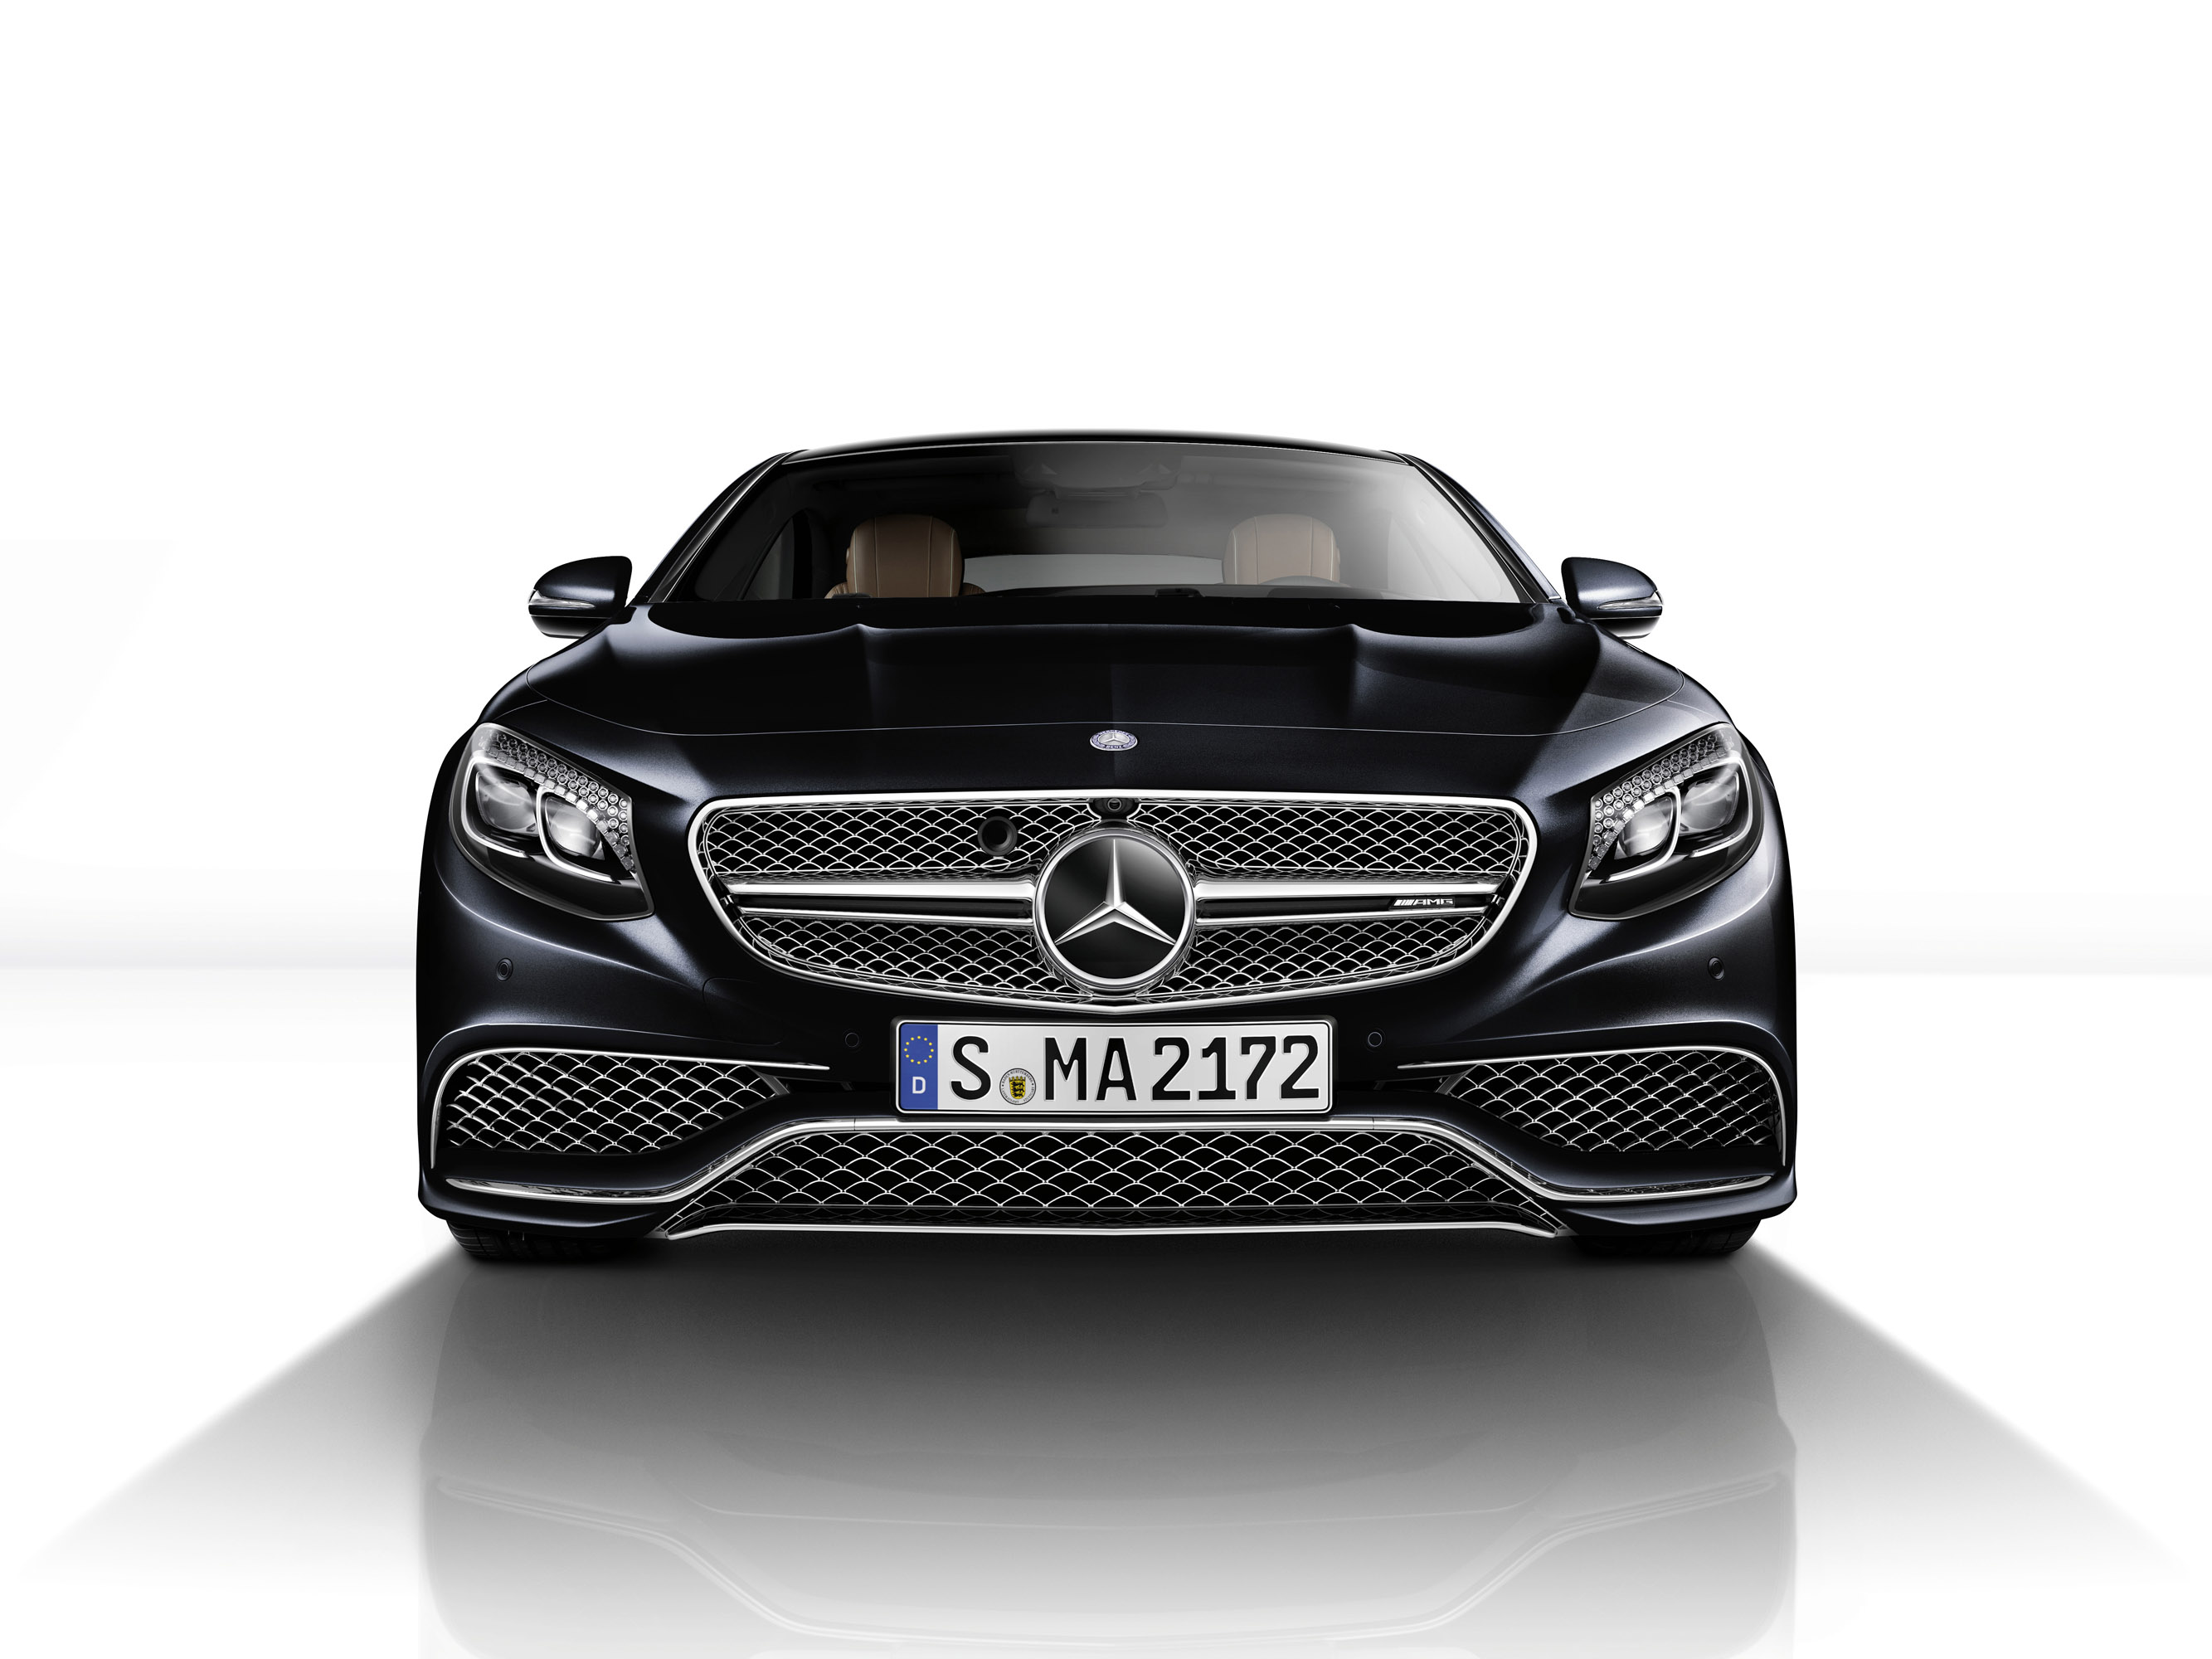 2014 mercedes benz s65 amg coupe price 244 009 for Mercedes benz amg 65 price